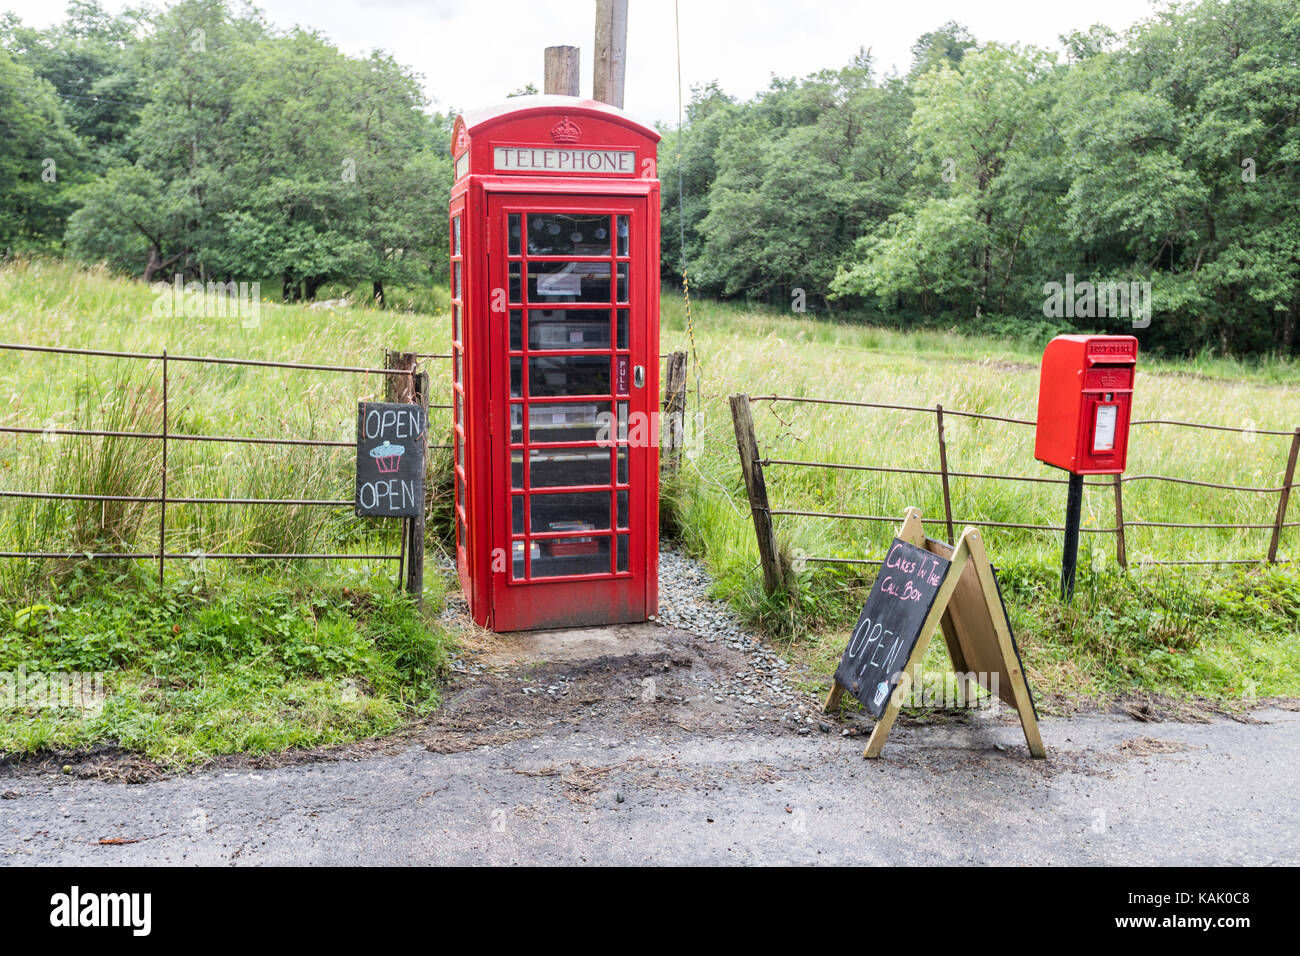 Telephone Red Box uses to sell cakes. Self service cakes in a Red Call Box in Cladich, Argyll, Scotland - Stock Image